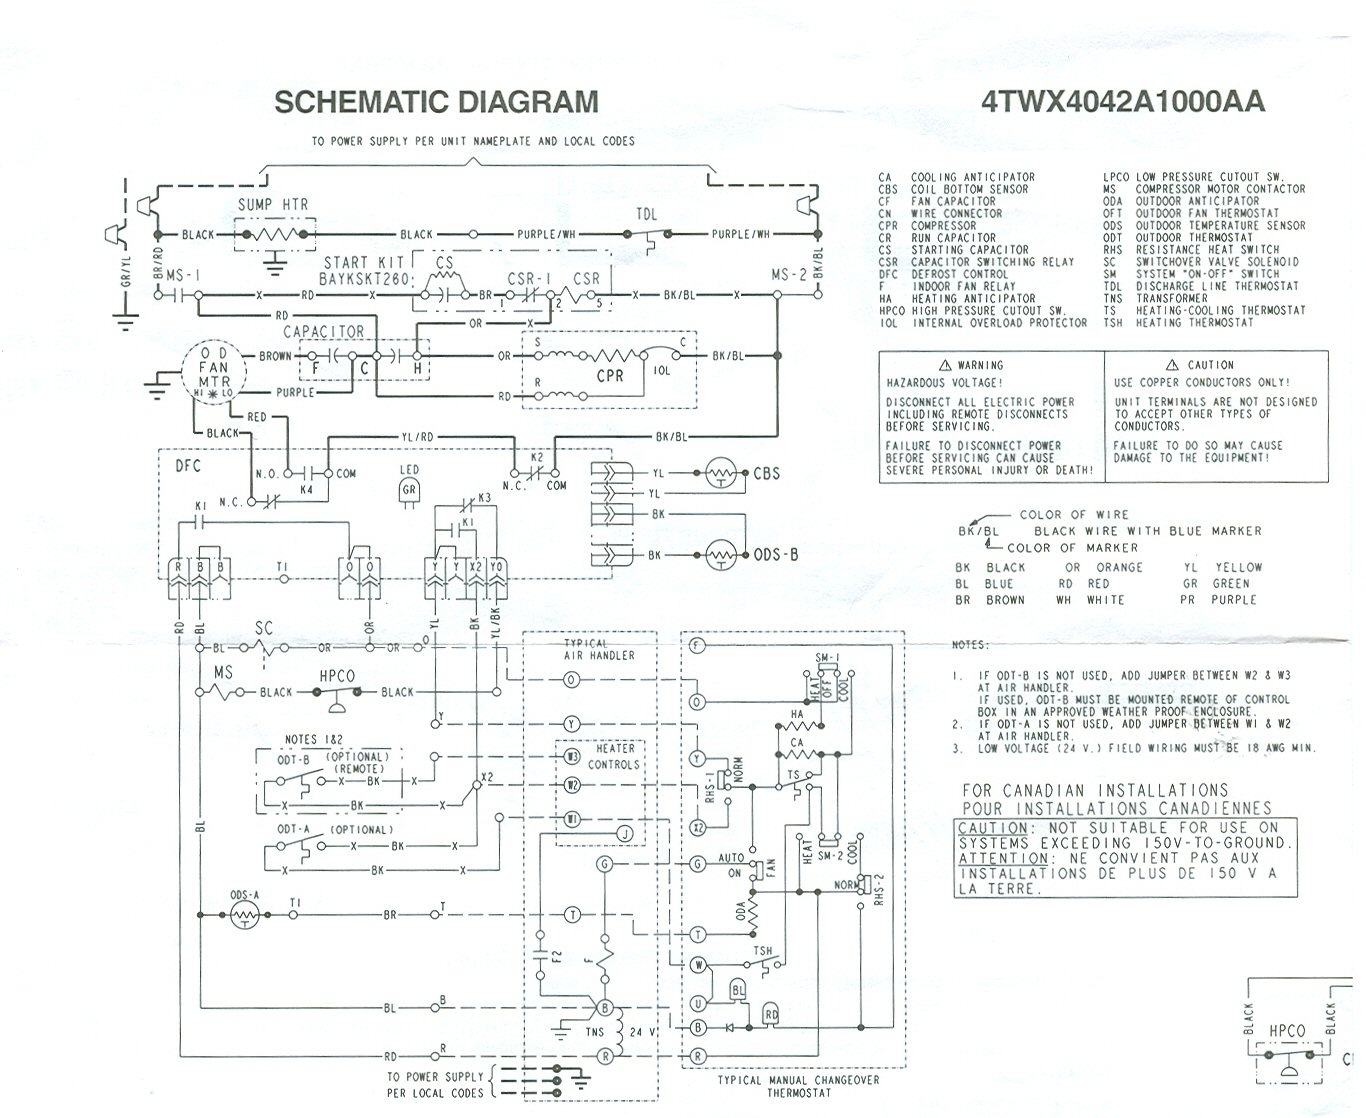 Superb Trane Thermostat Wiring Diagram Sample Wiring Cloud Brecesaoduqqnet